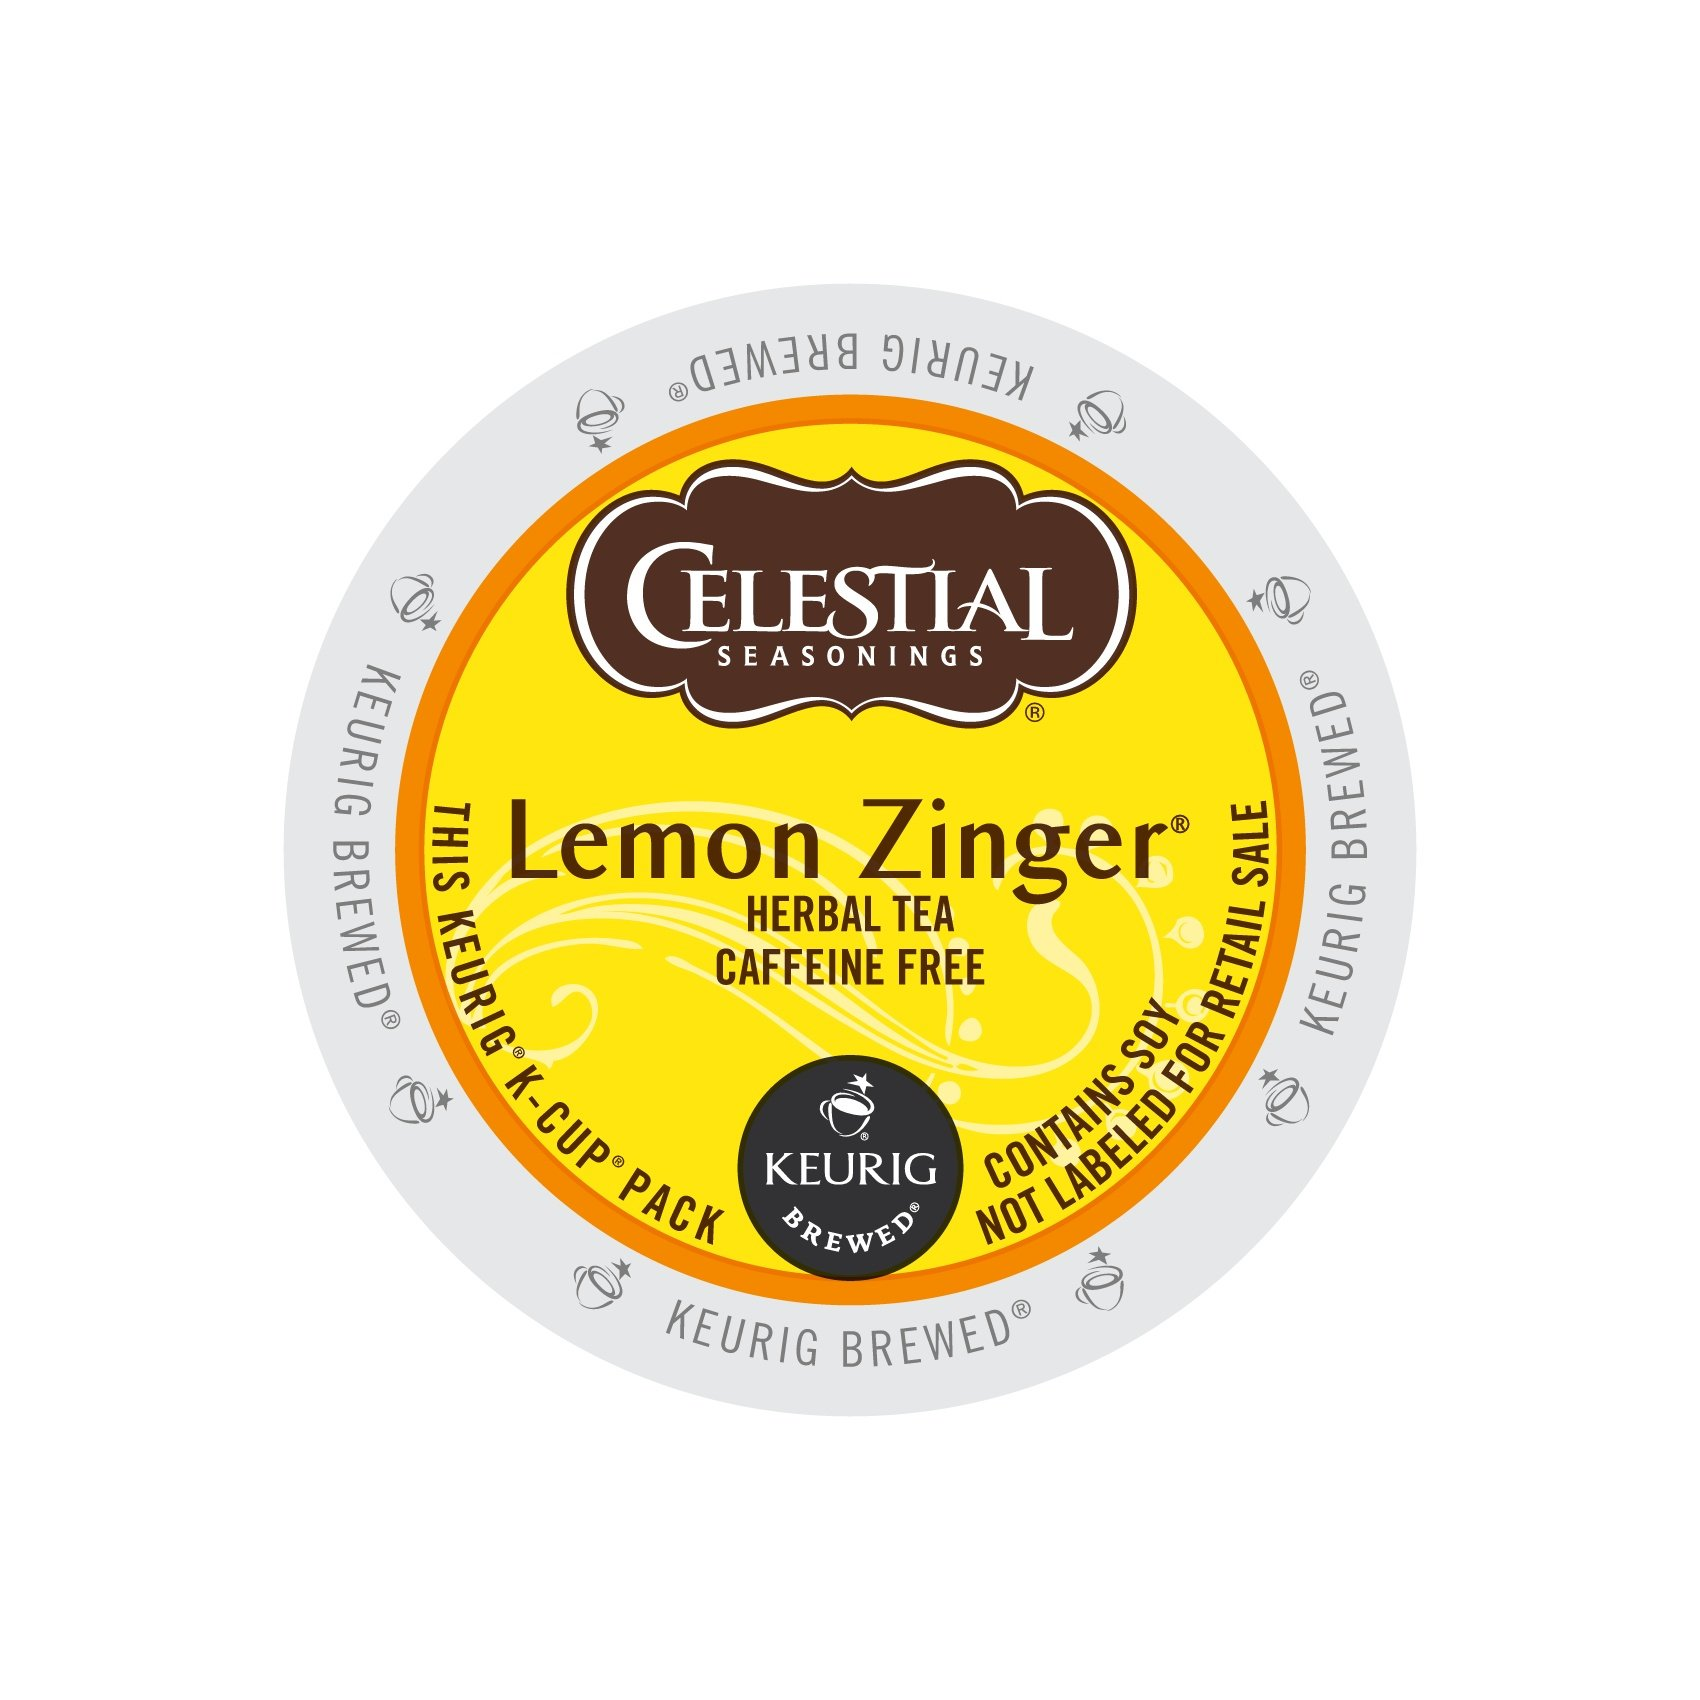 Celestial Seasonings 14732CT Lemon Zinger Herbal Tea K-Cups, 96/carton